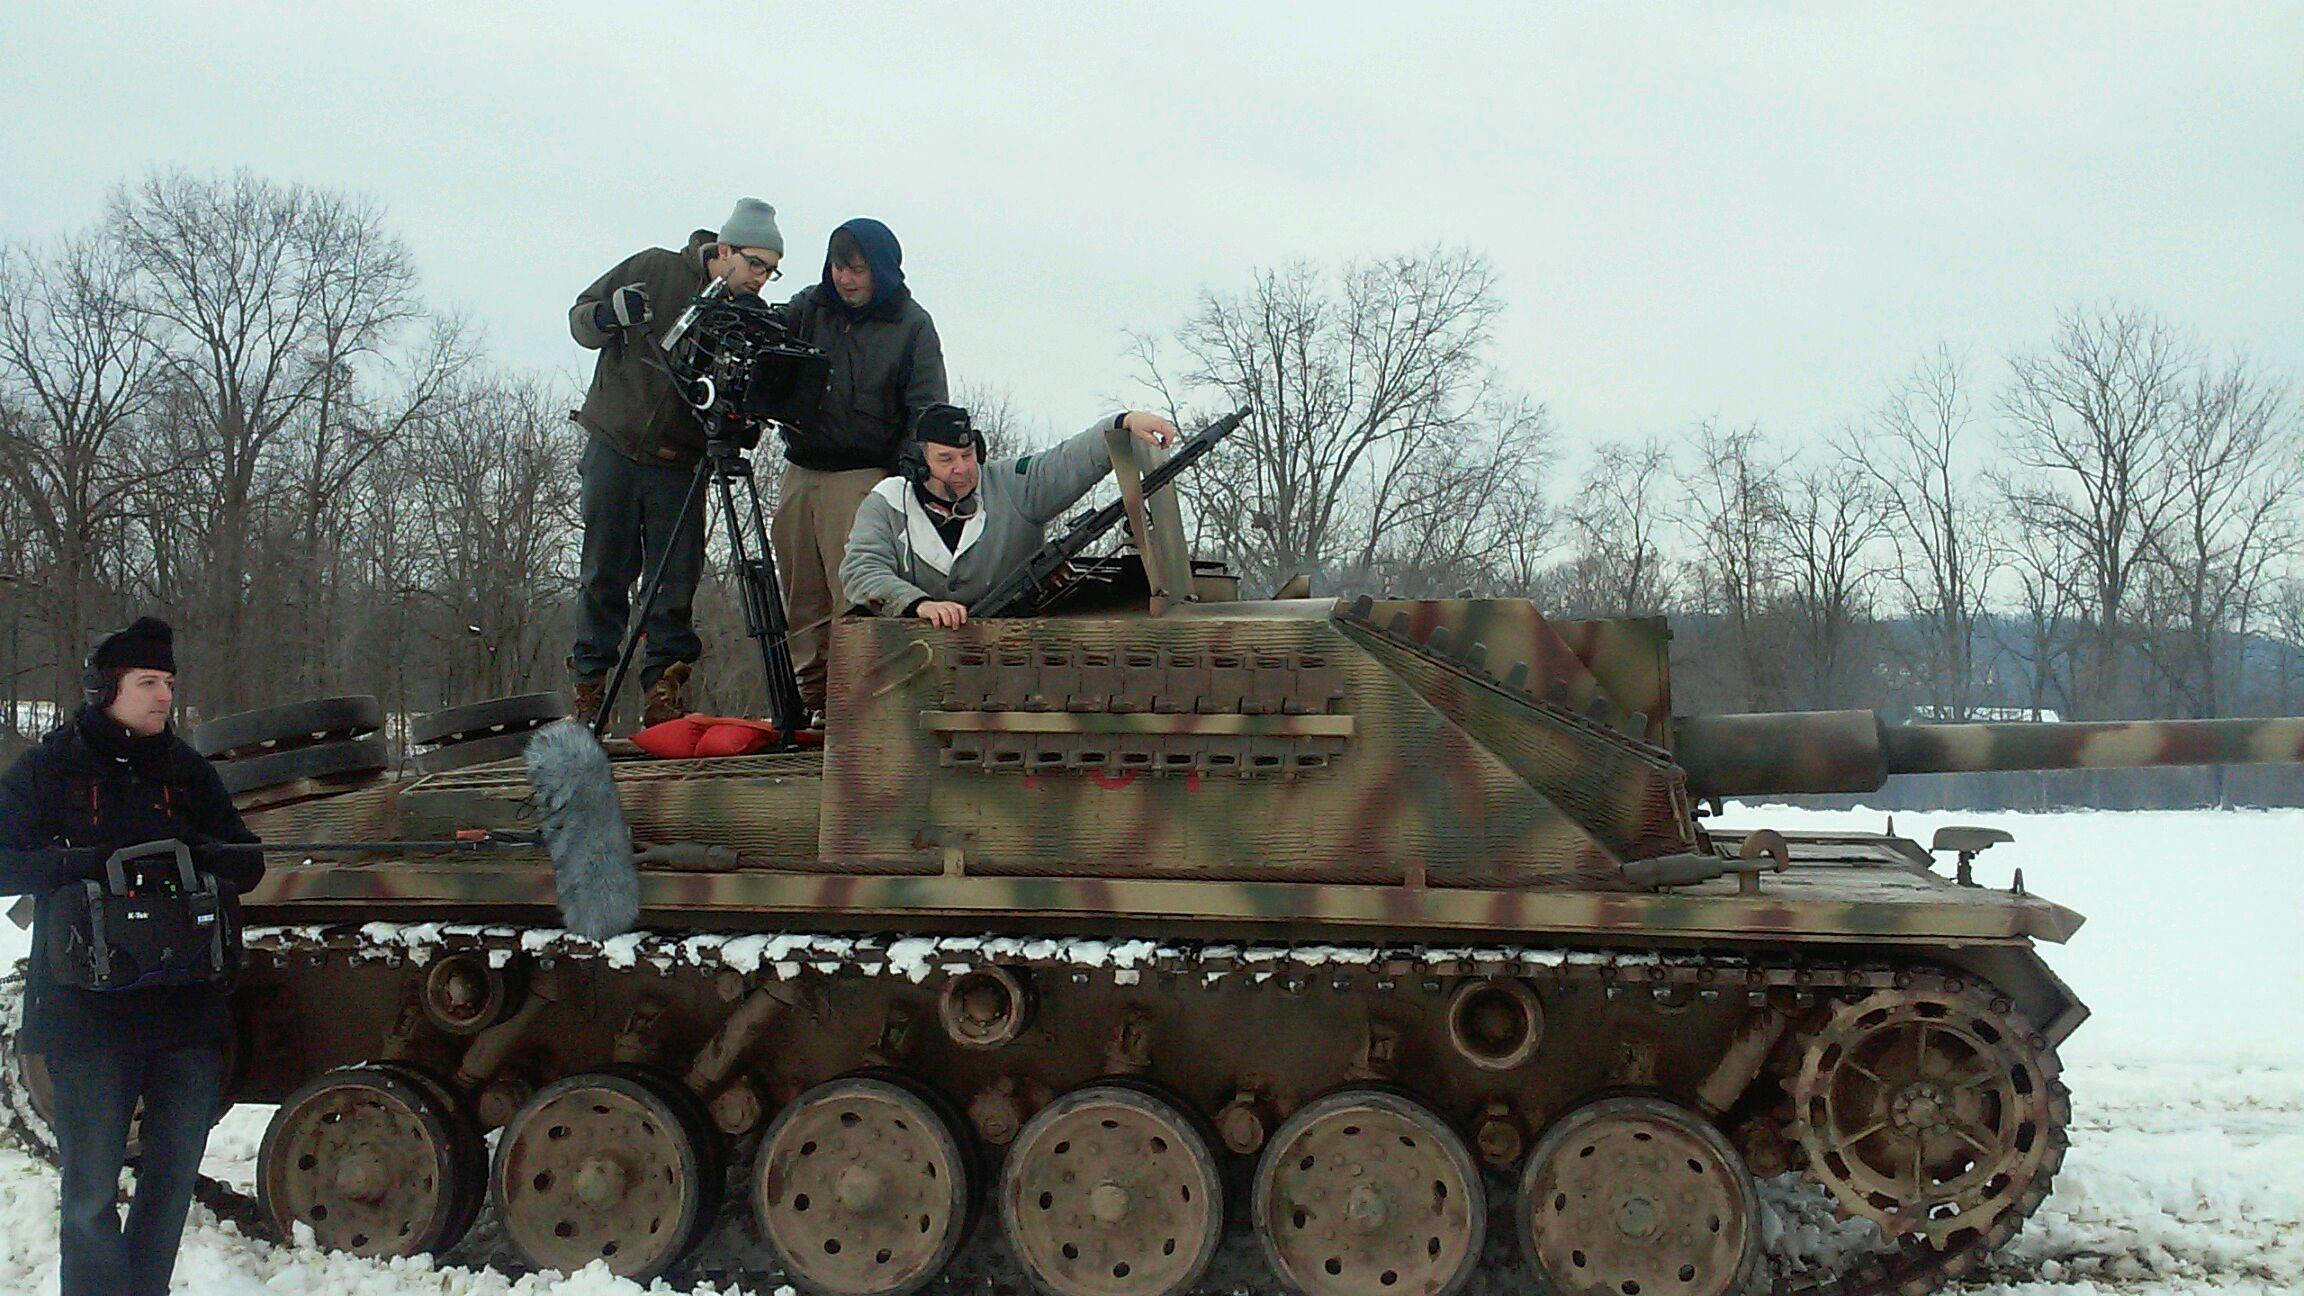 on a tank on the set of Fatal Crossroads